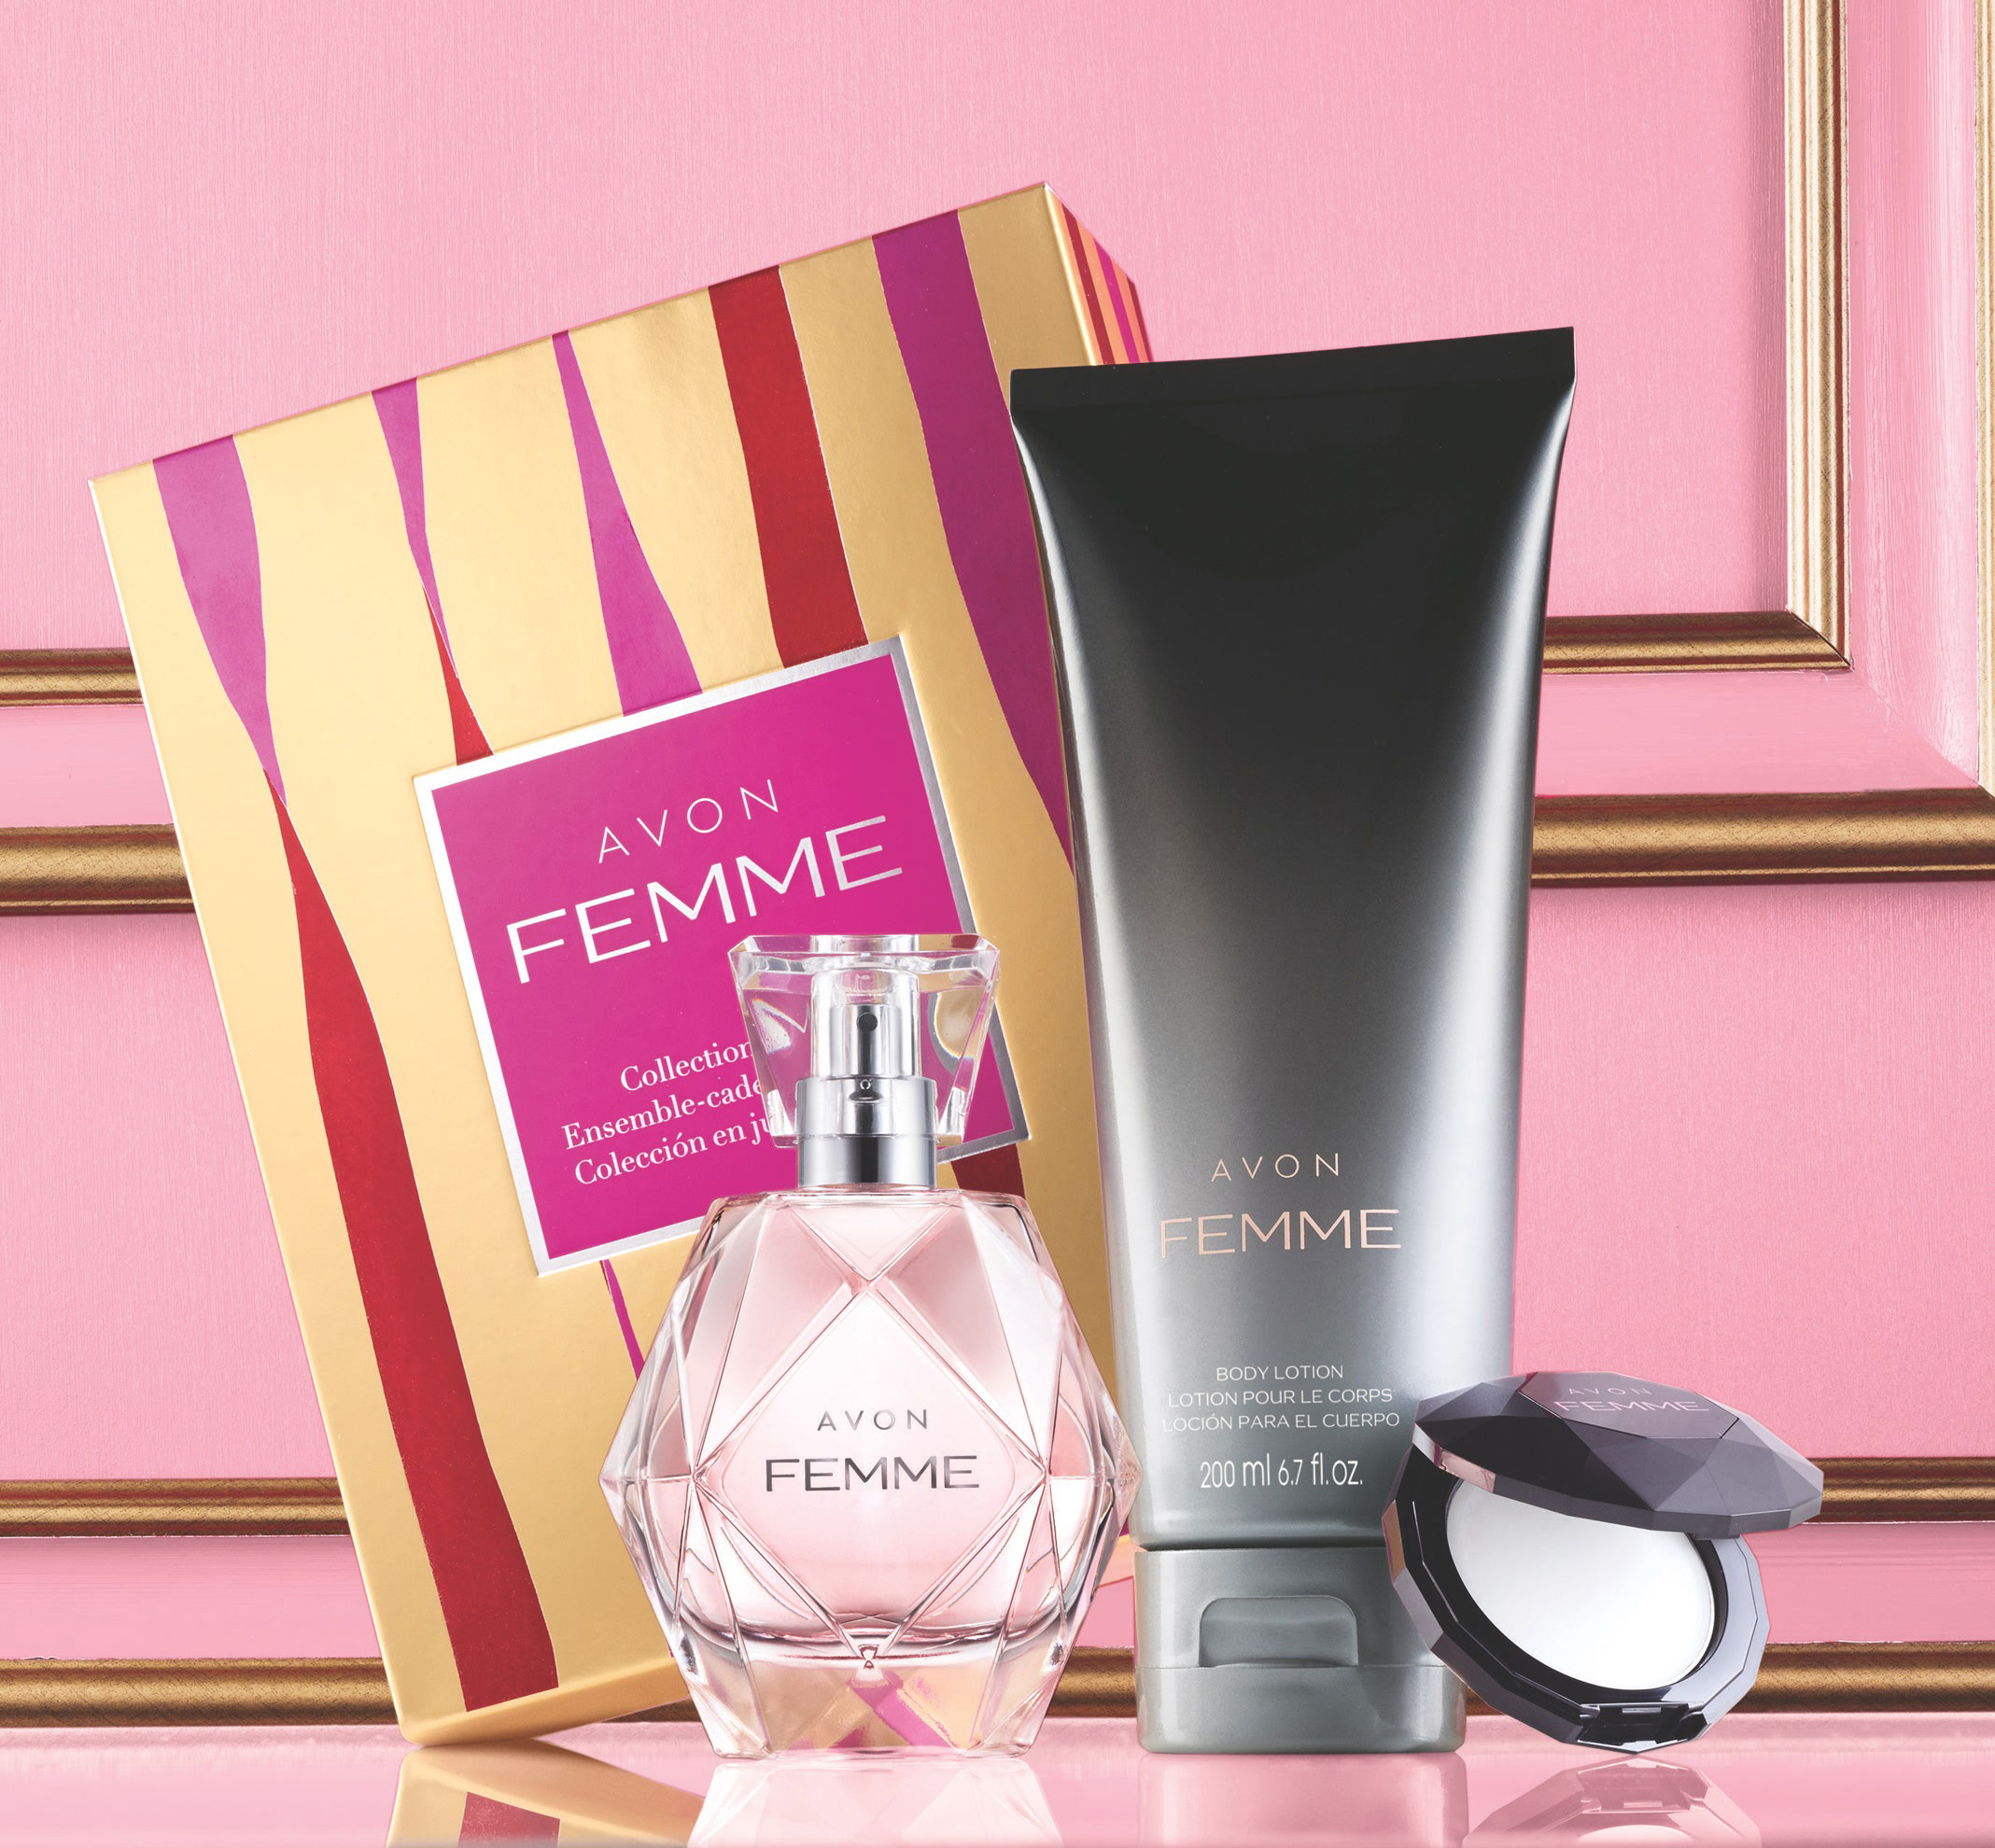 Avon Femme Fragrance Collection Gift Set: The essence of glamour is captured in an alluring blend of rich jasmine petals, magnolia and amberwoods, all packaged in a beautiful gift box. The collection includes: Eau de Parfum spray, Body Lotion and Fragrance Compact. ($30.00)